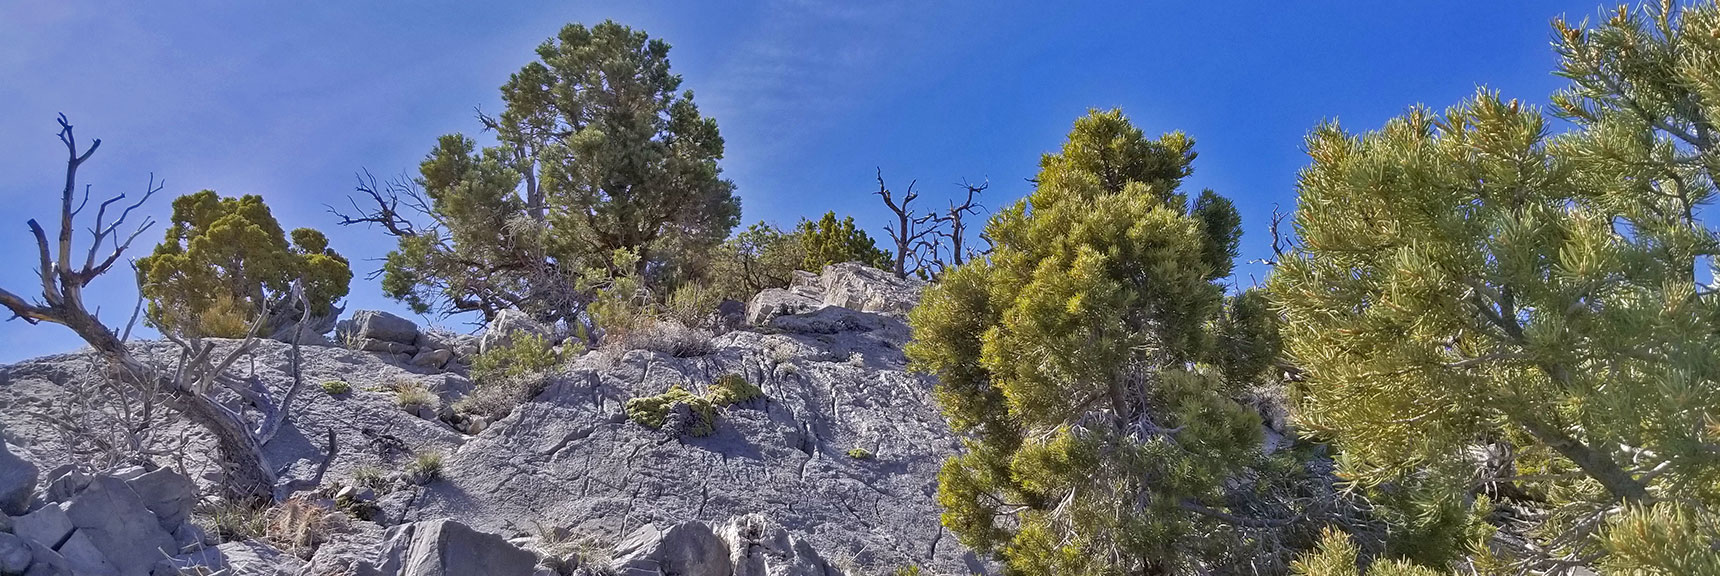 Class 3 Climbing Section on Ridge Just Below La Madre Mountain Nevada Northern Approach and High Points